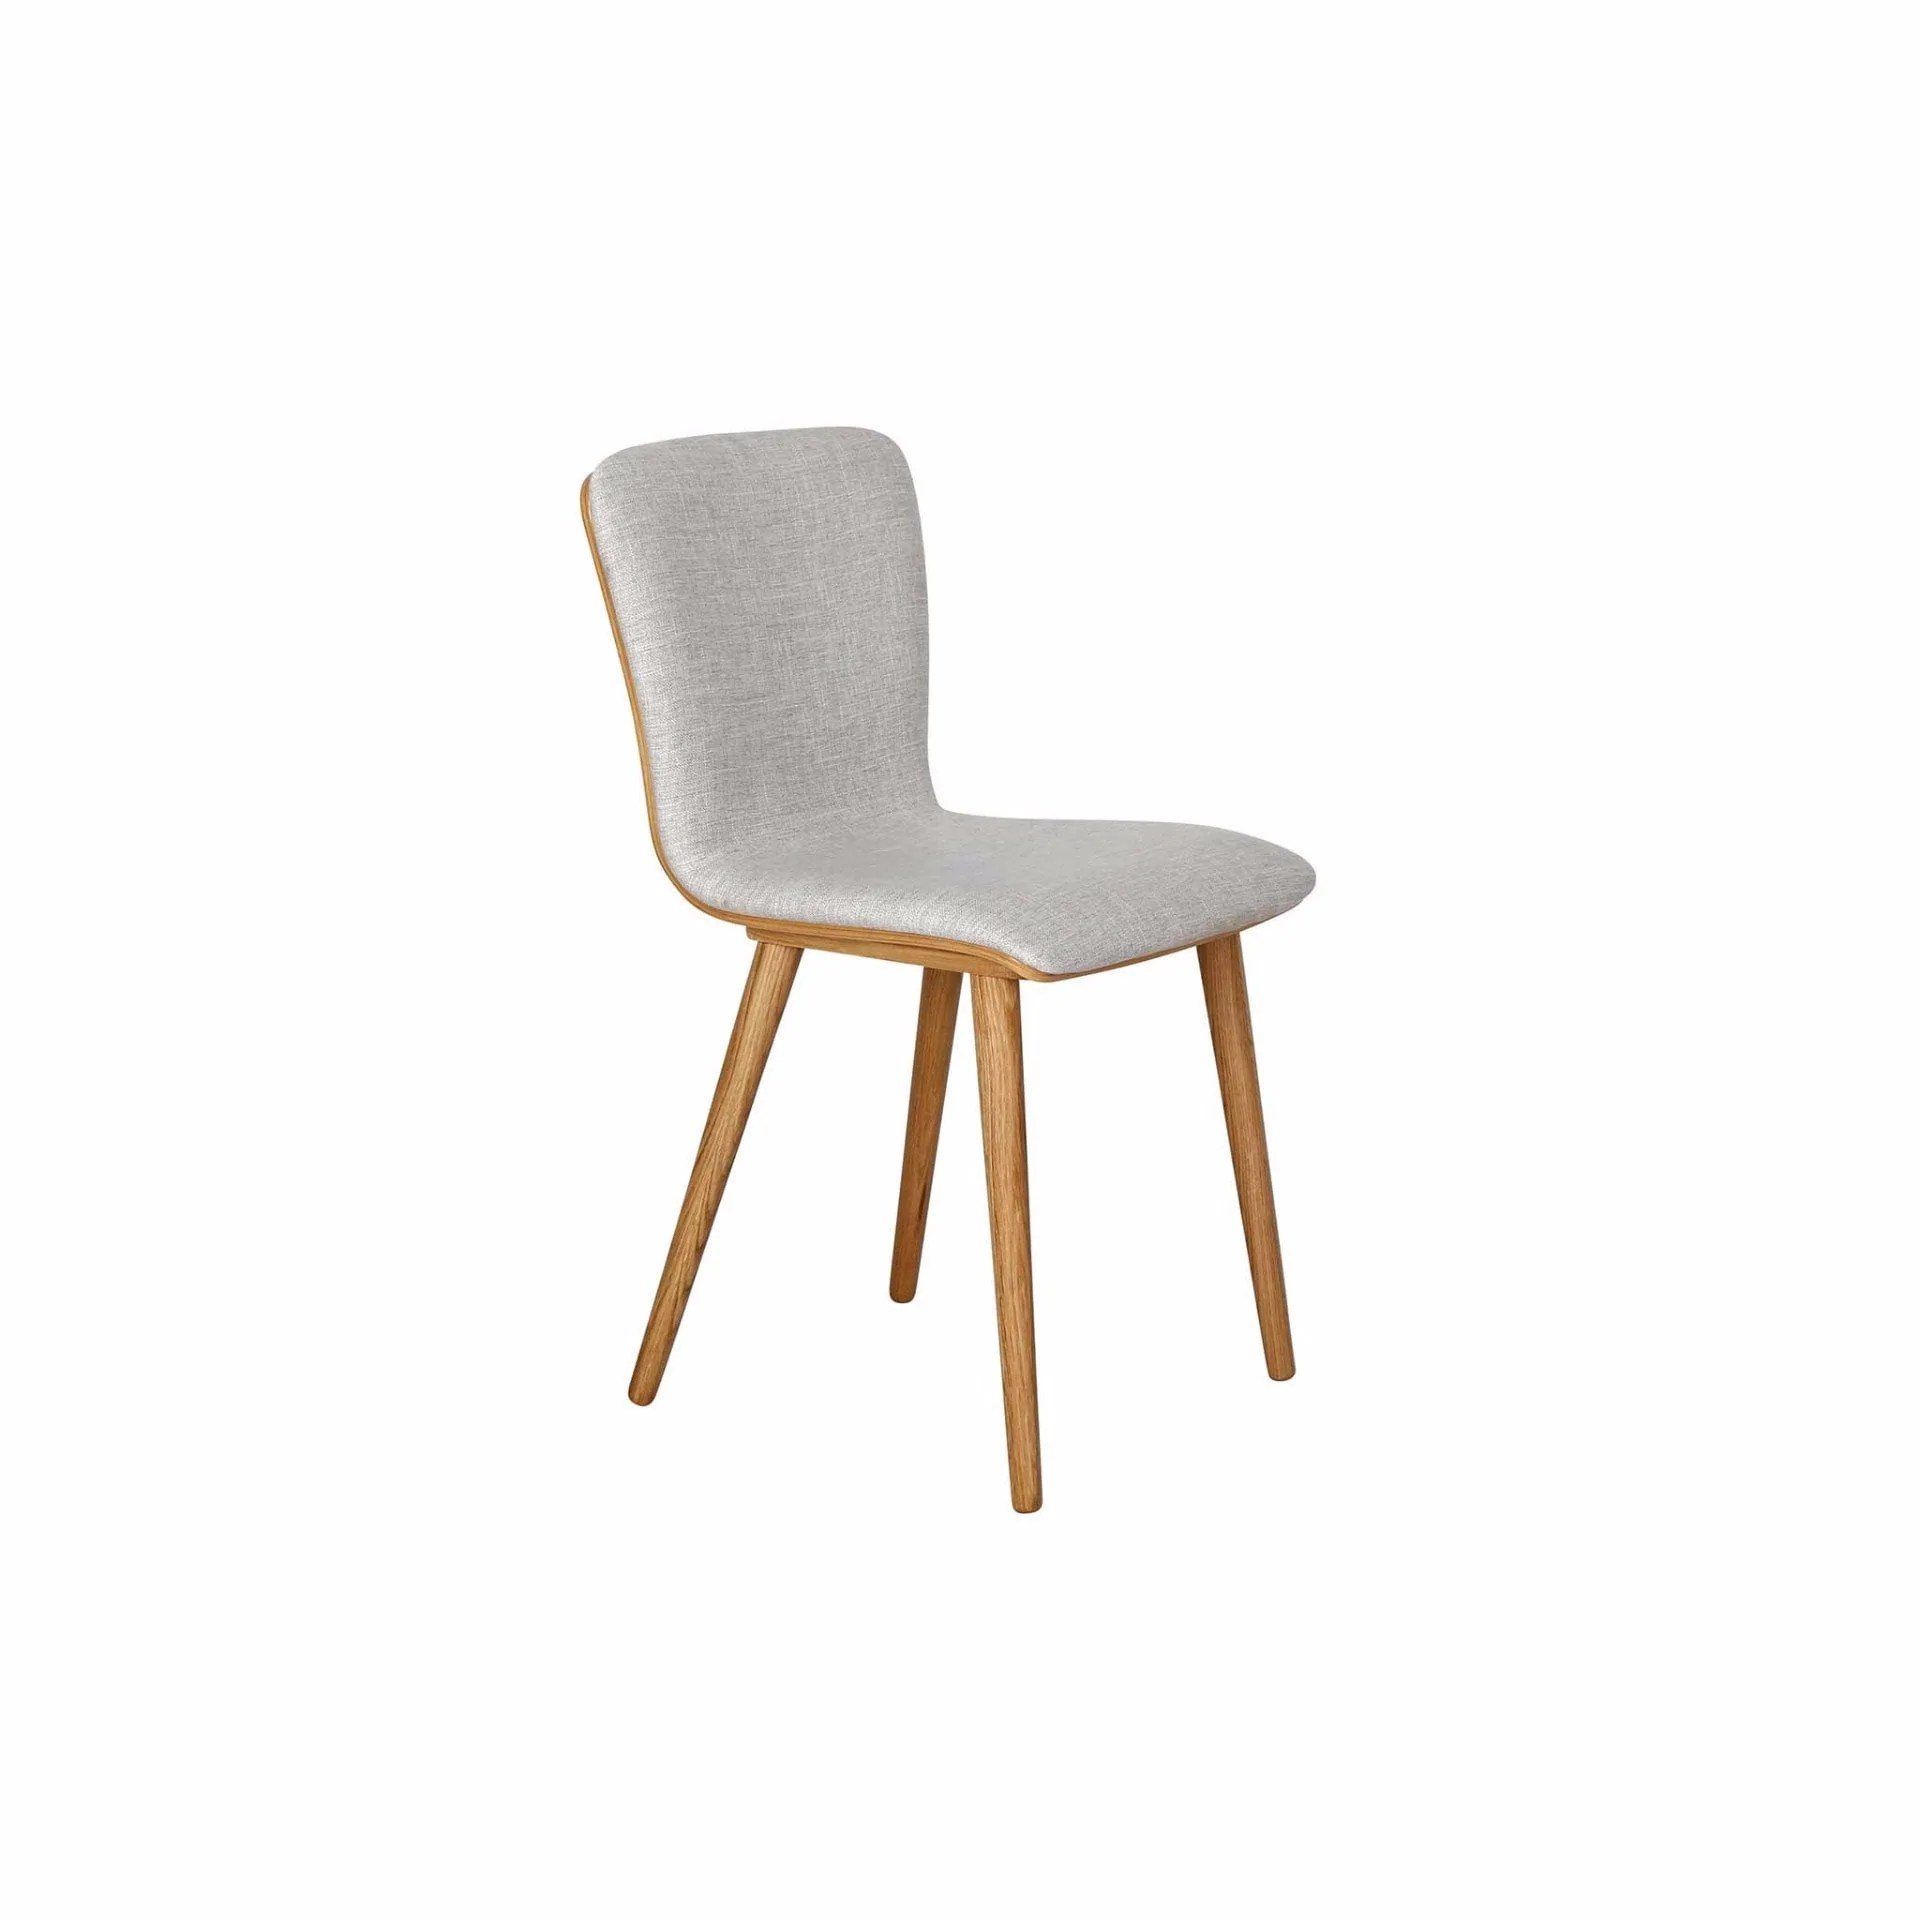 Scandinavian Chairs Scandinavian Style Dining Chairs In Melbourne And Sydney